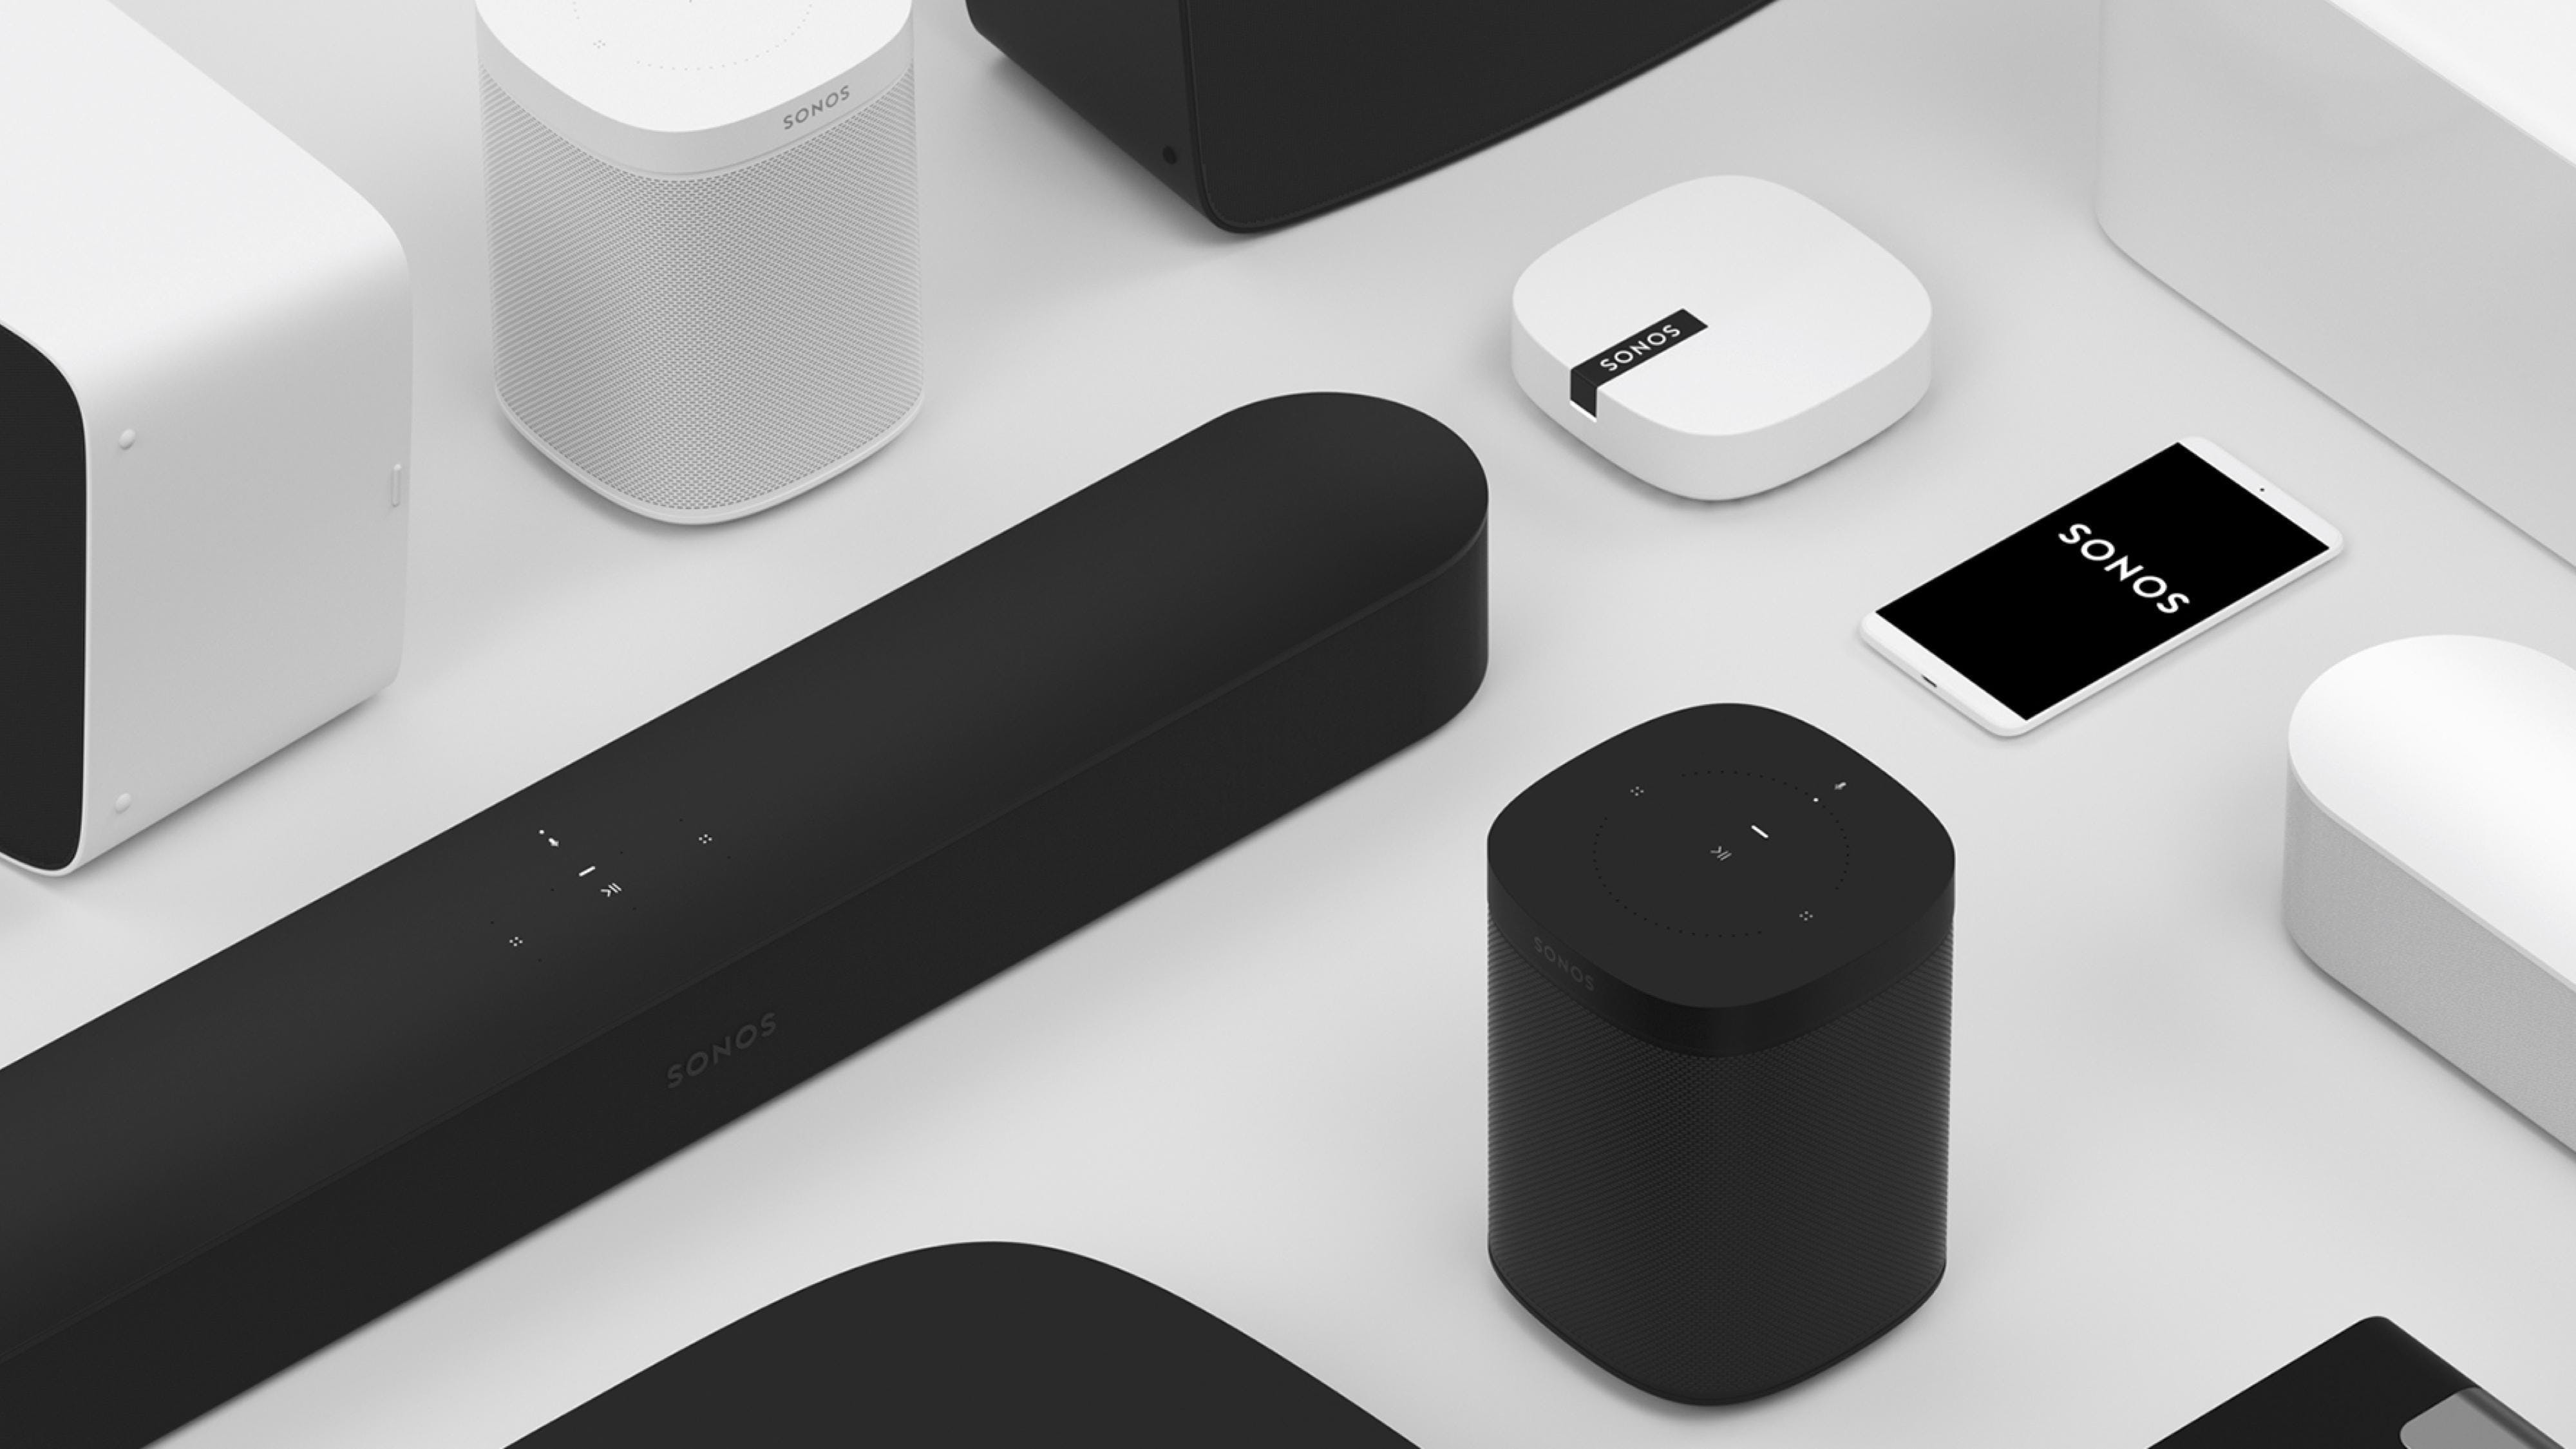 Sonos Smart Session Basics: Entdecke das Home